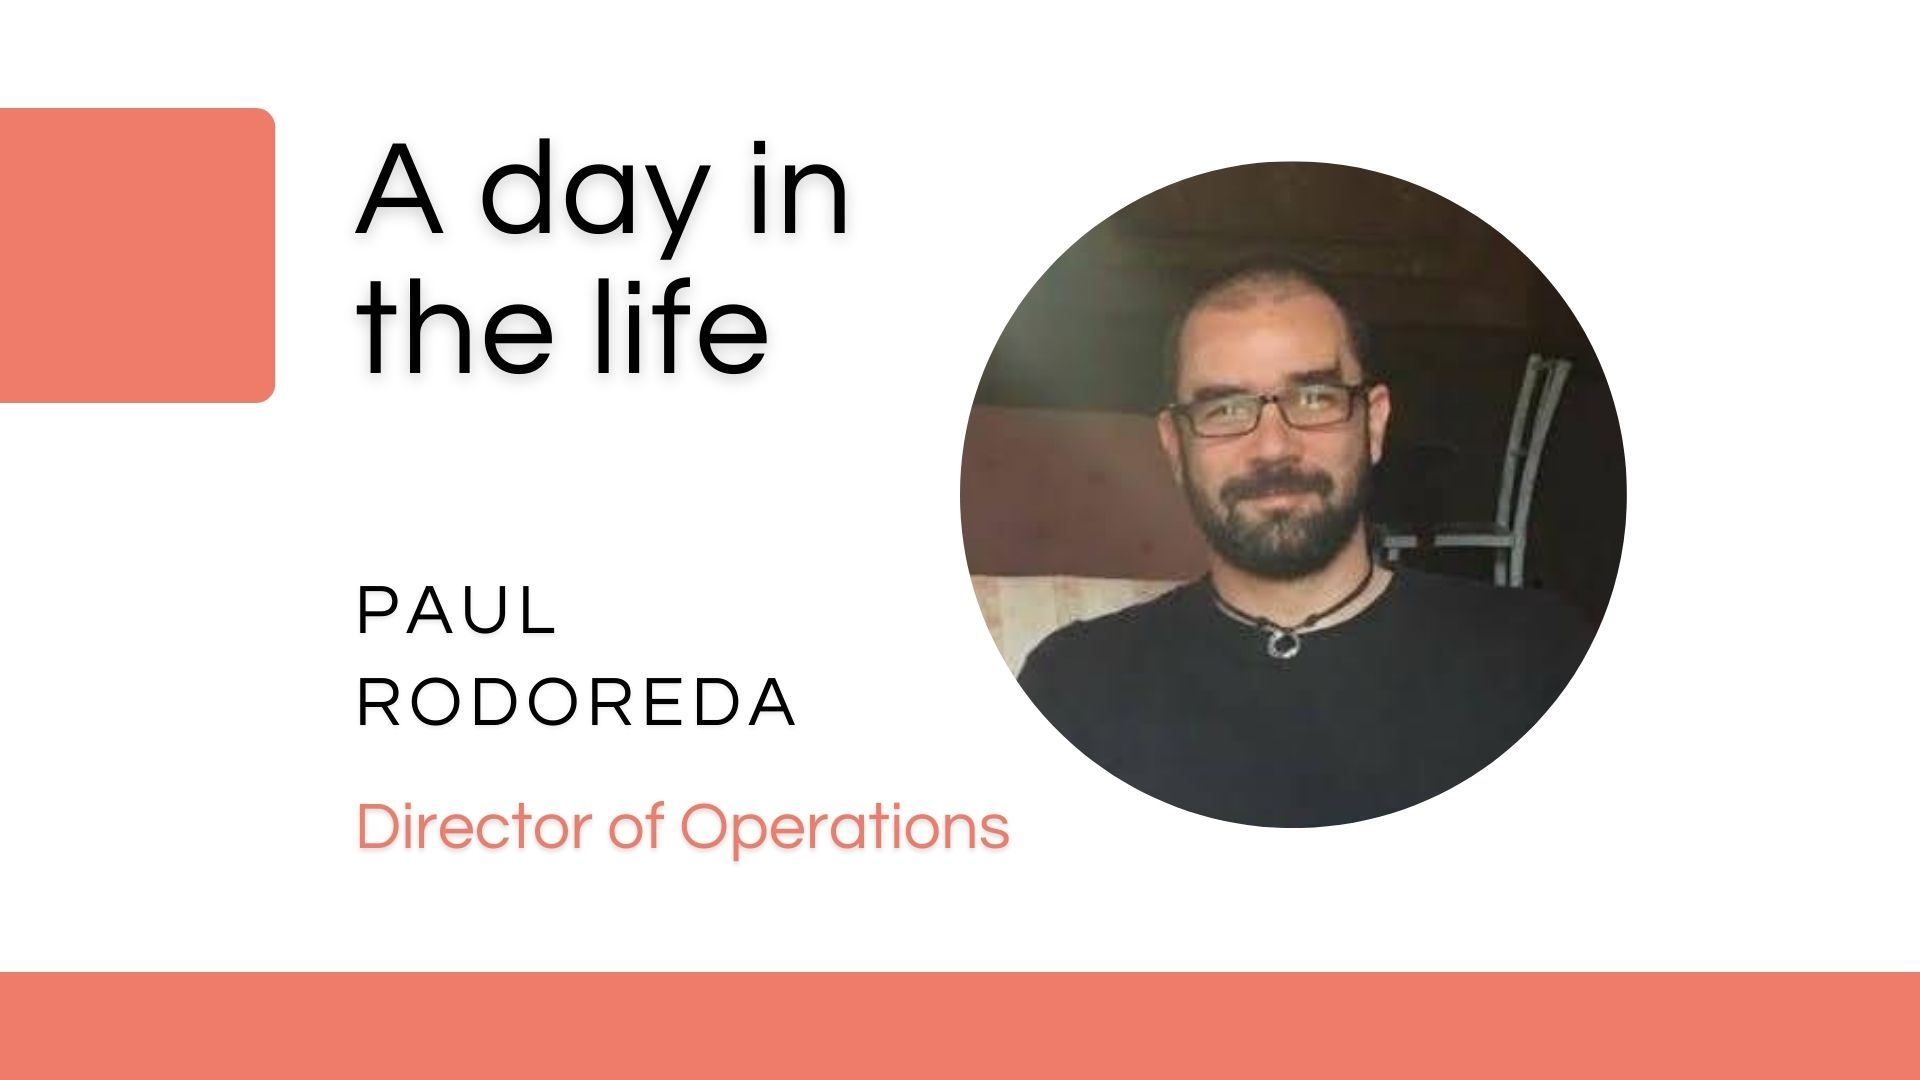 Day in the life Interview: Paul Rodoreda